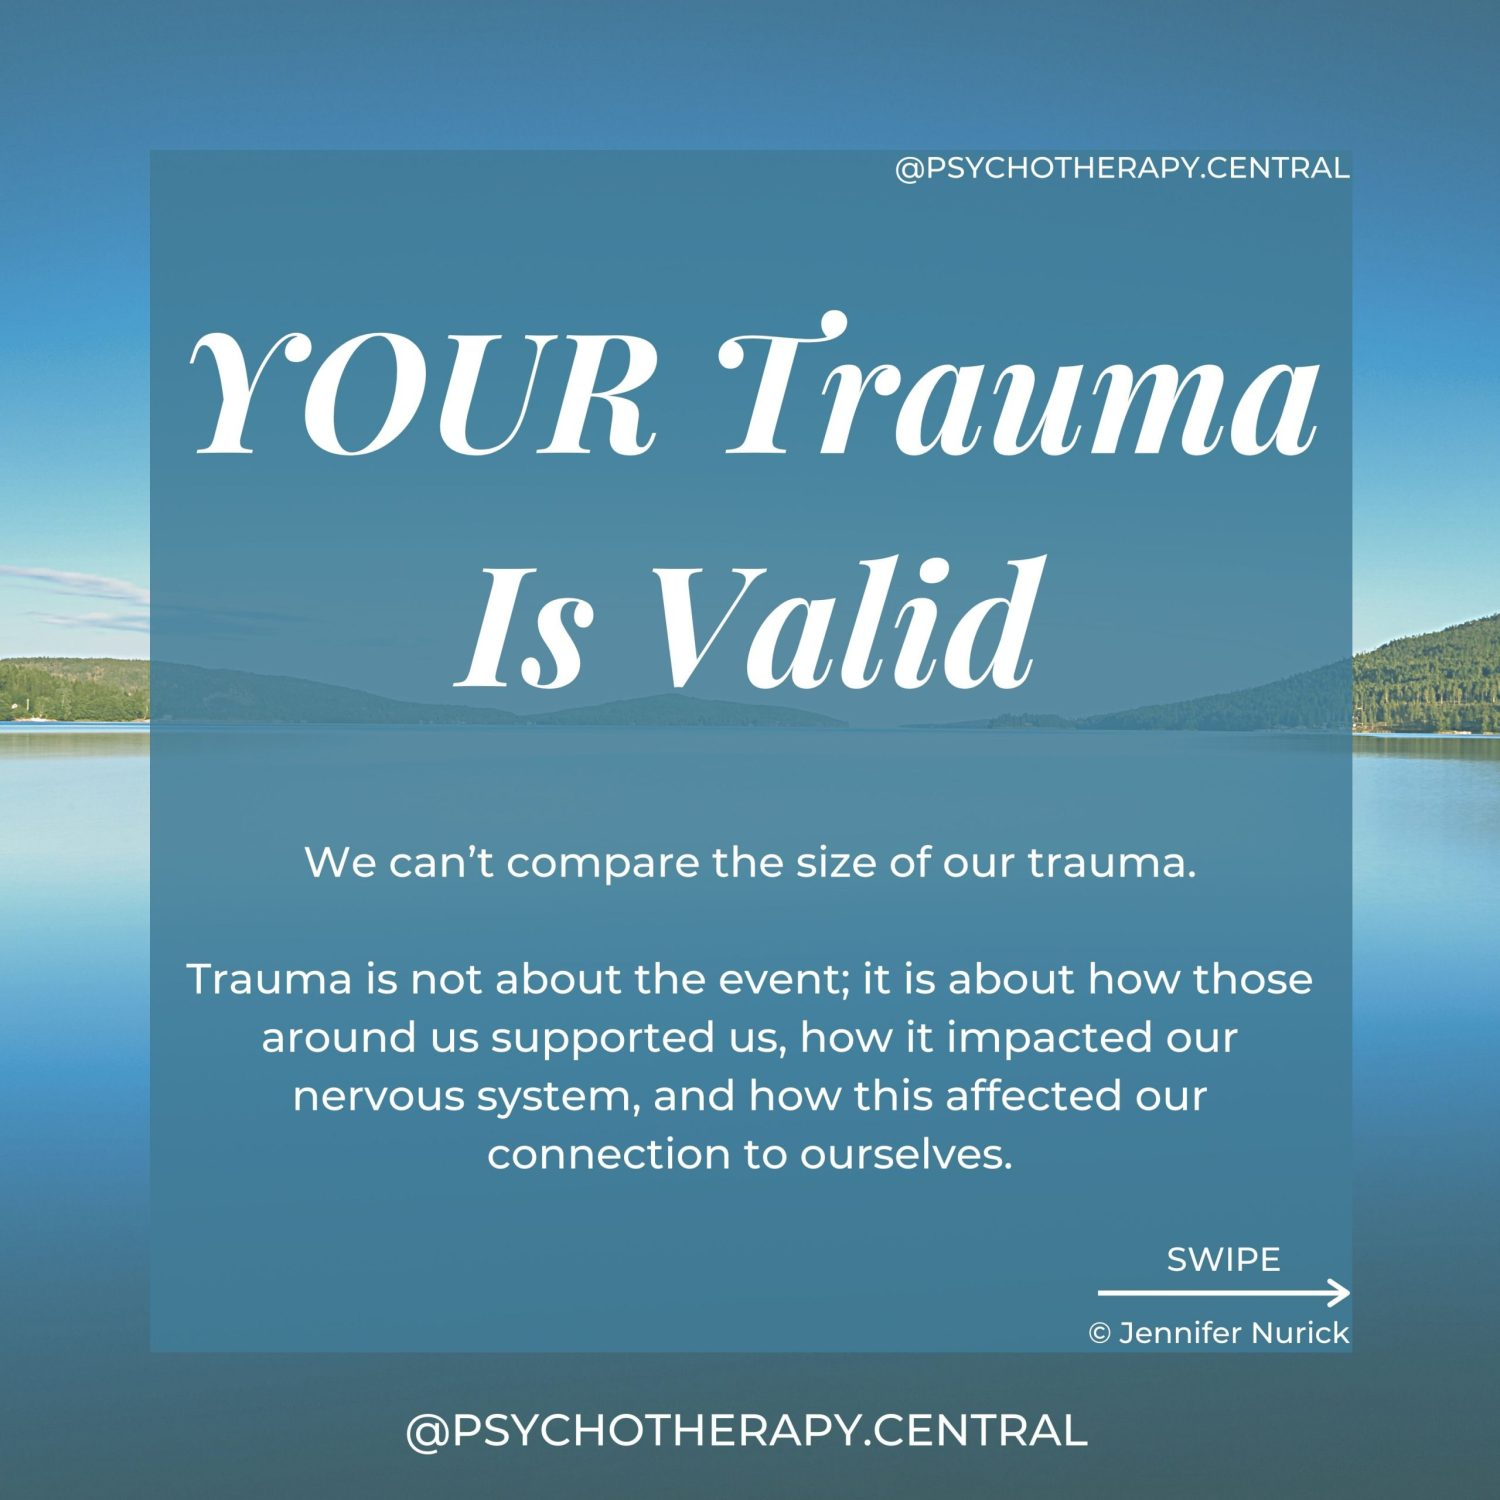 Trauma is not about the event; it is about how those around us supported us, how it impacted our nervous system, and how this affected our connection to ourselves. We can't compare the size of our trauma.